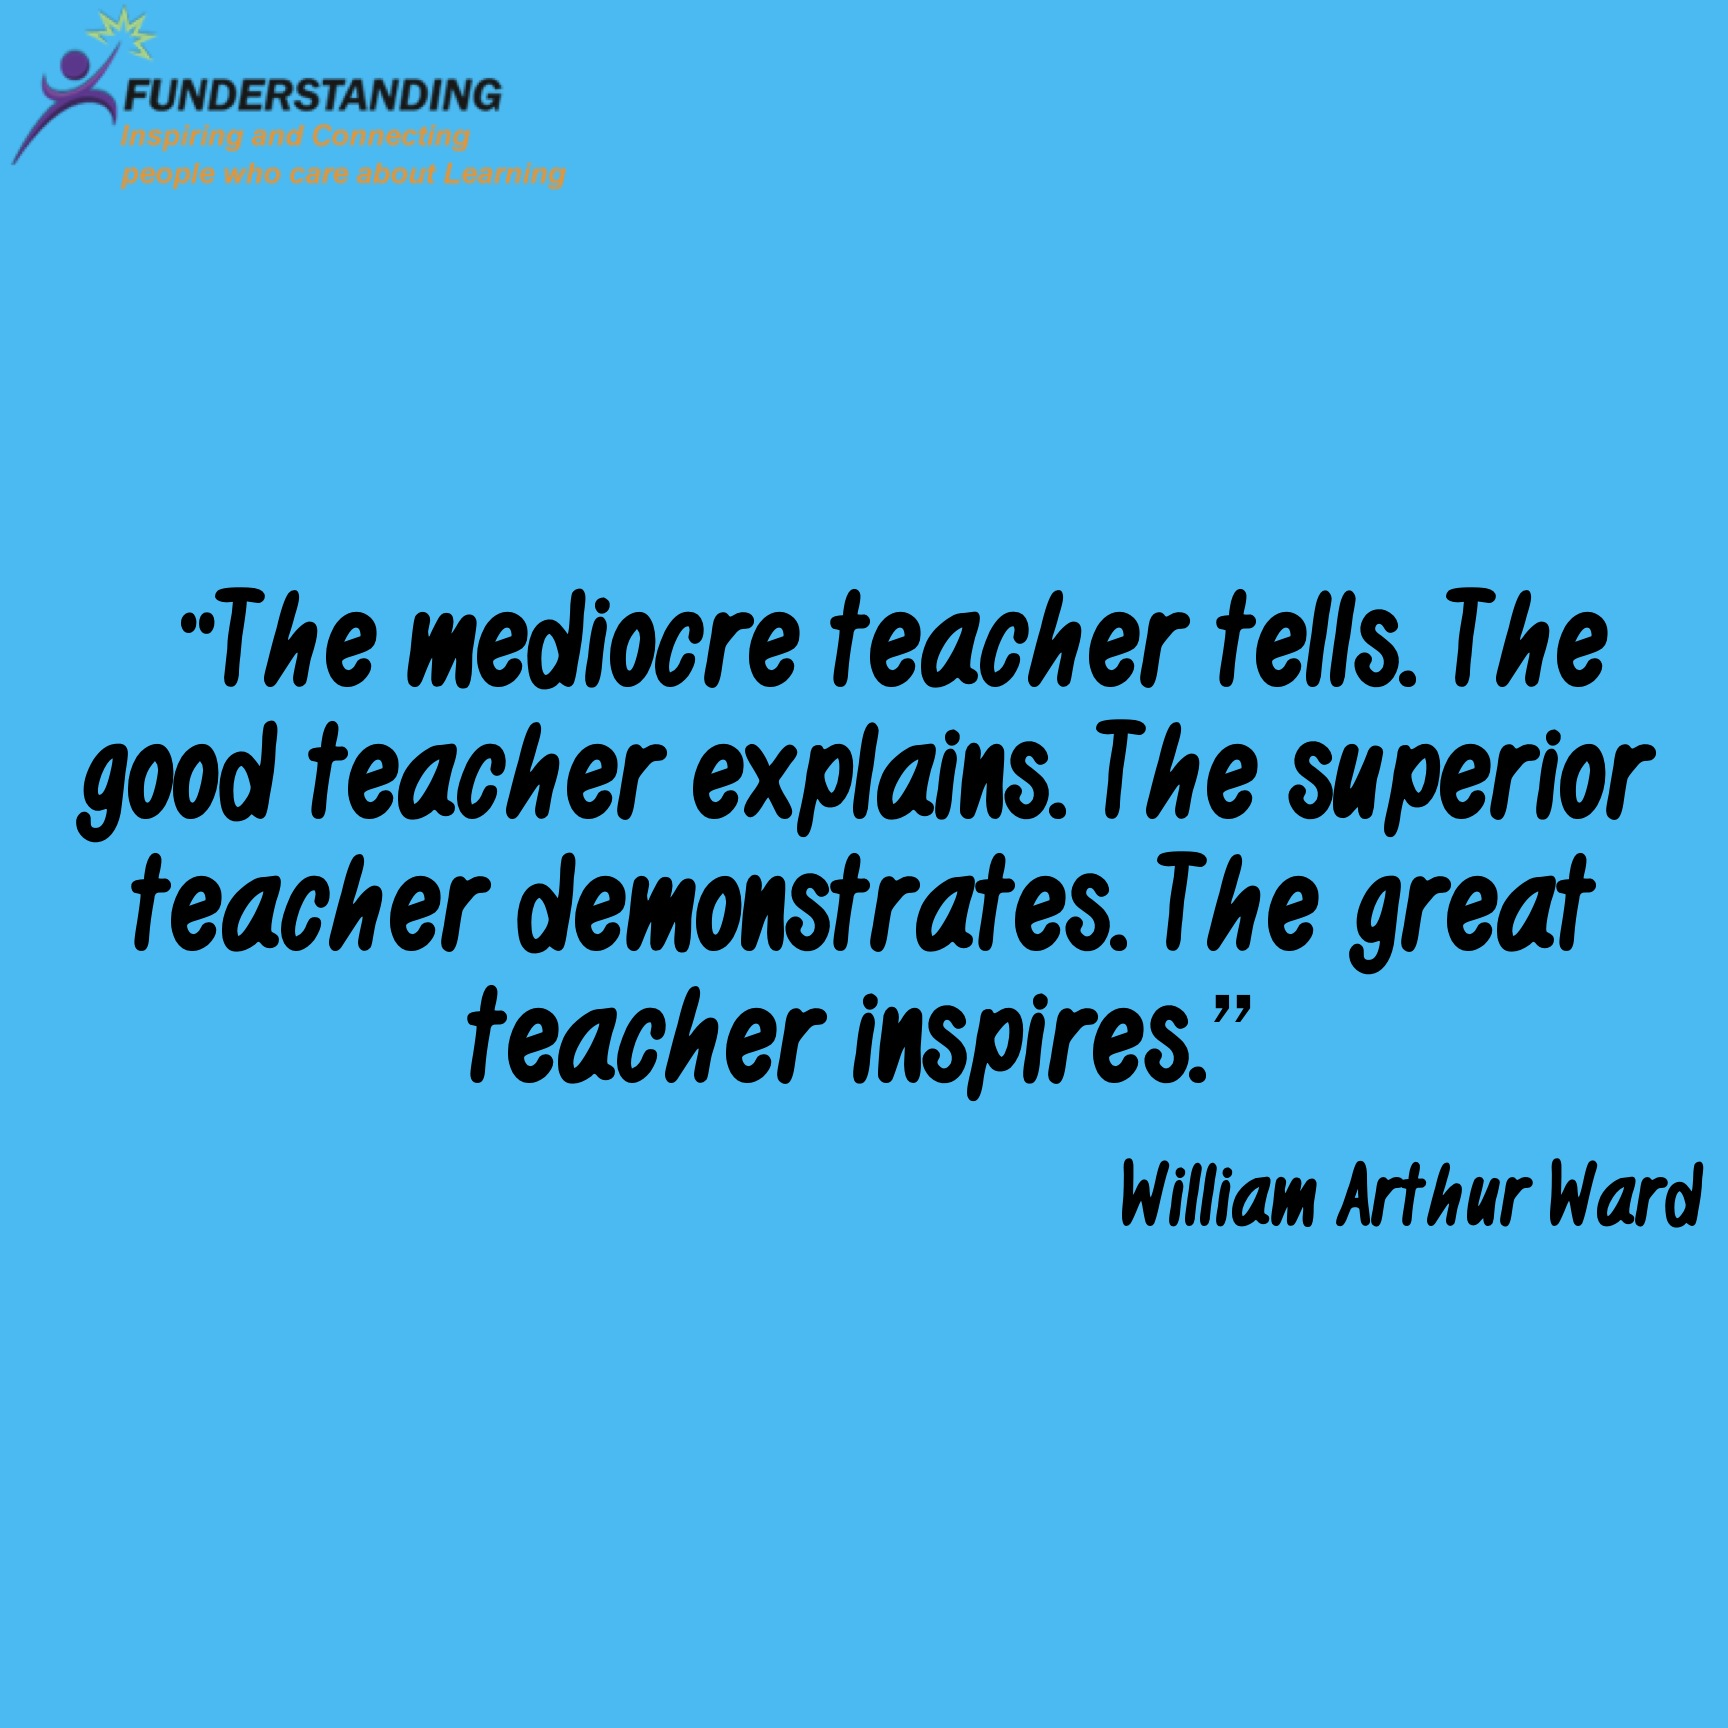 The Good Quote Quoteoftheday48Funderstanding  Funderstanding Education